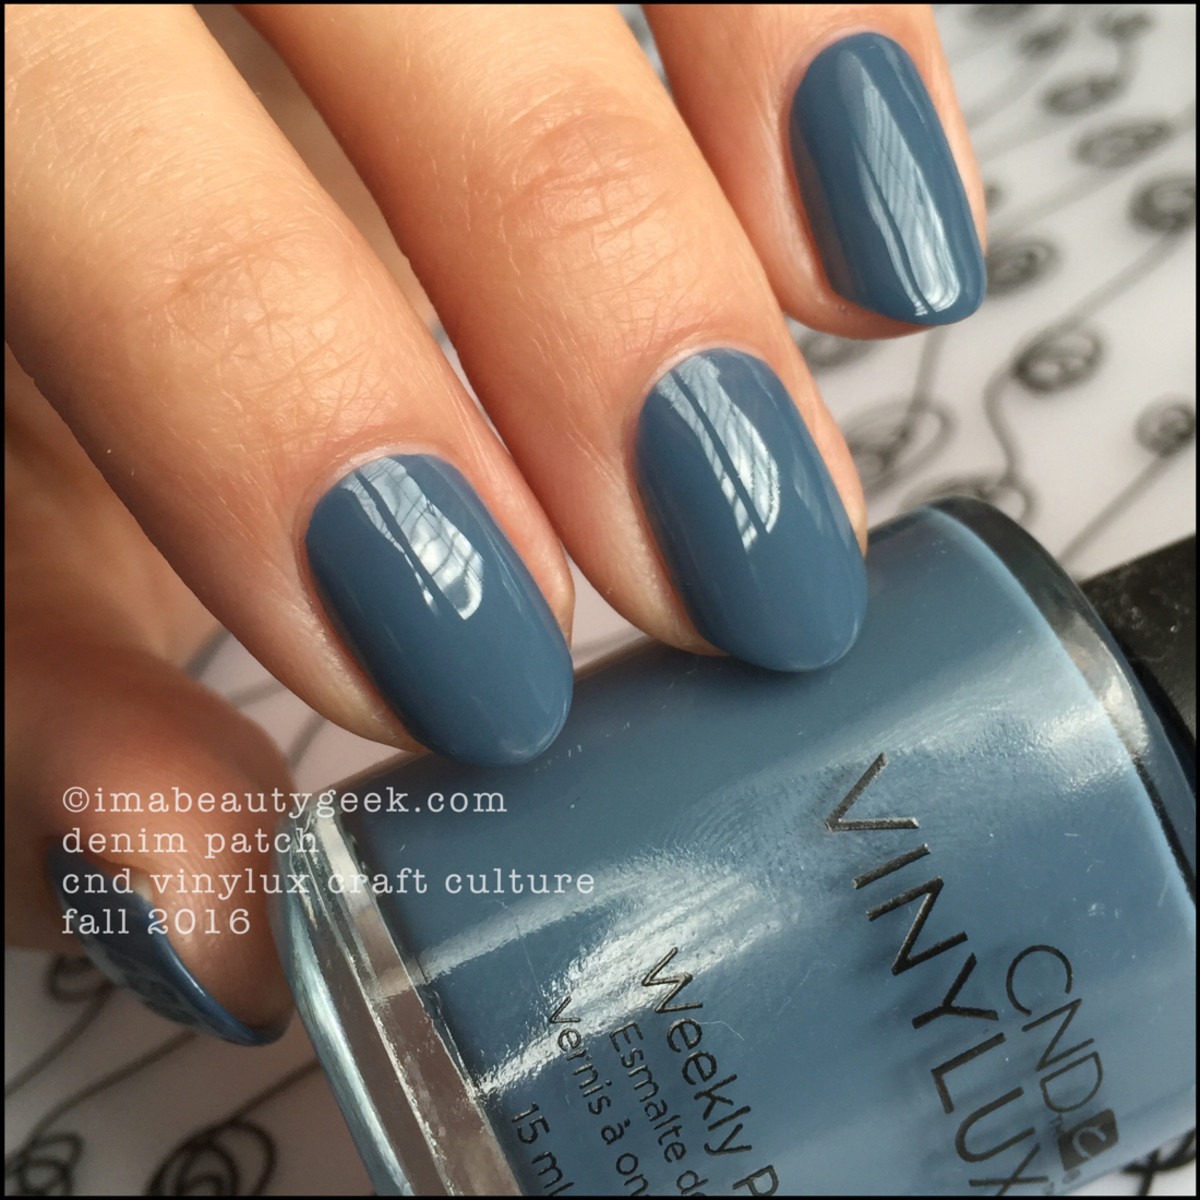 CND Vinylux Denim Patch_CND Craft Culture Collection 2016